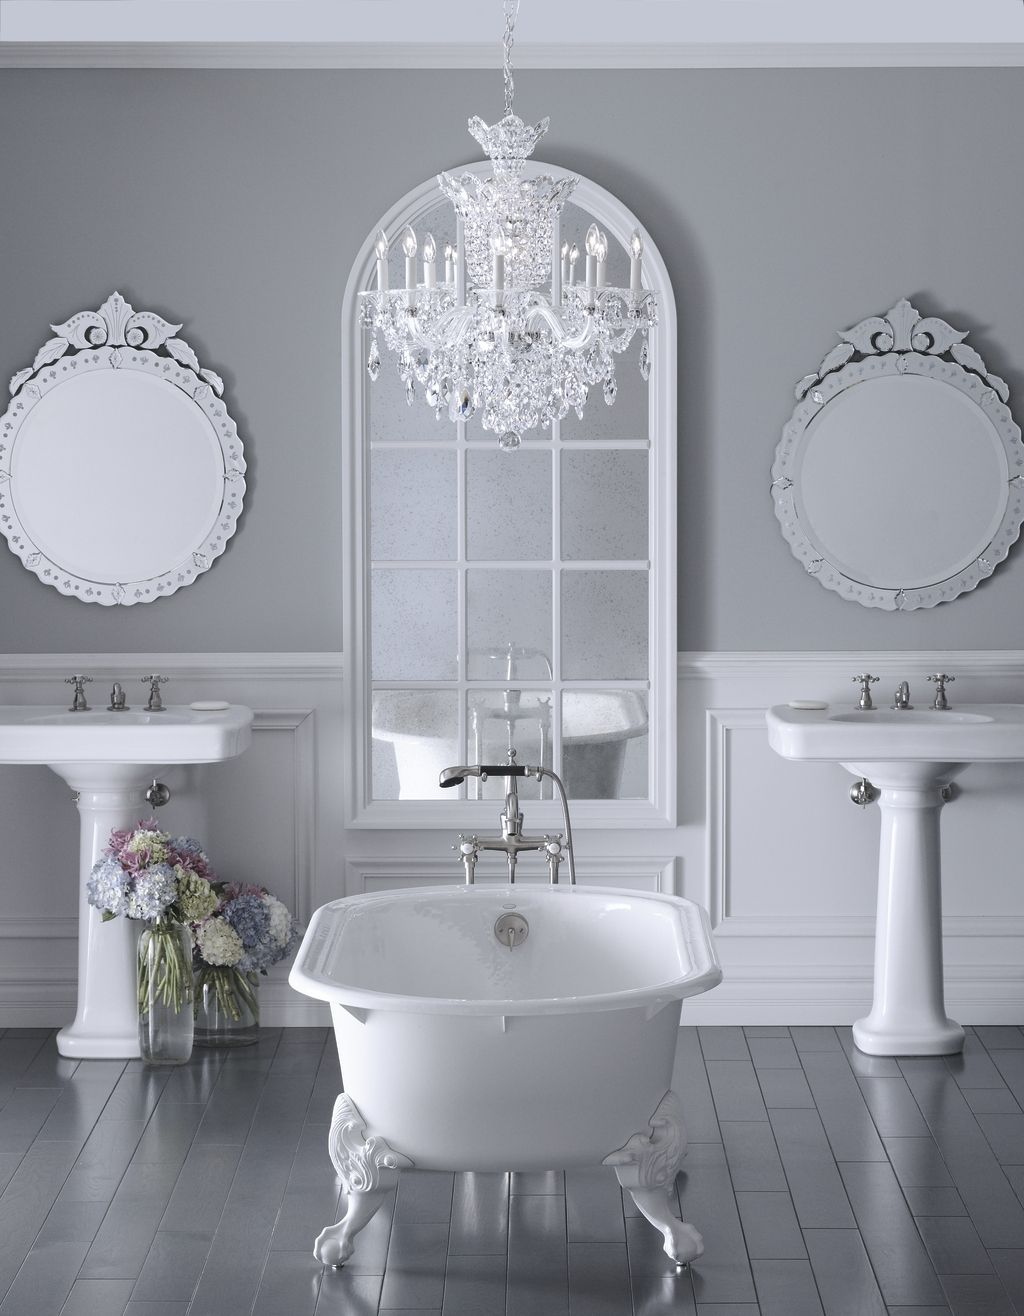 The bold look of bathroom ideas pinterest grey bathrooms iron chandeliers bathroom itself is a little ornate but the clawfoot tub and chandelier is cool aloadofball Images